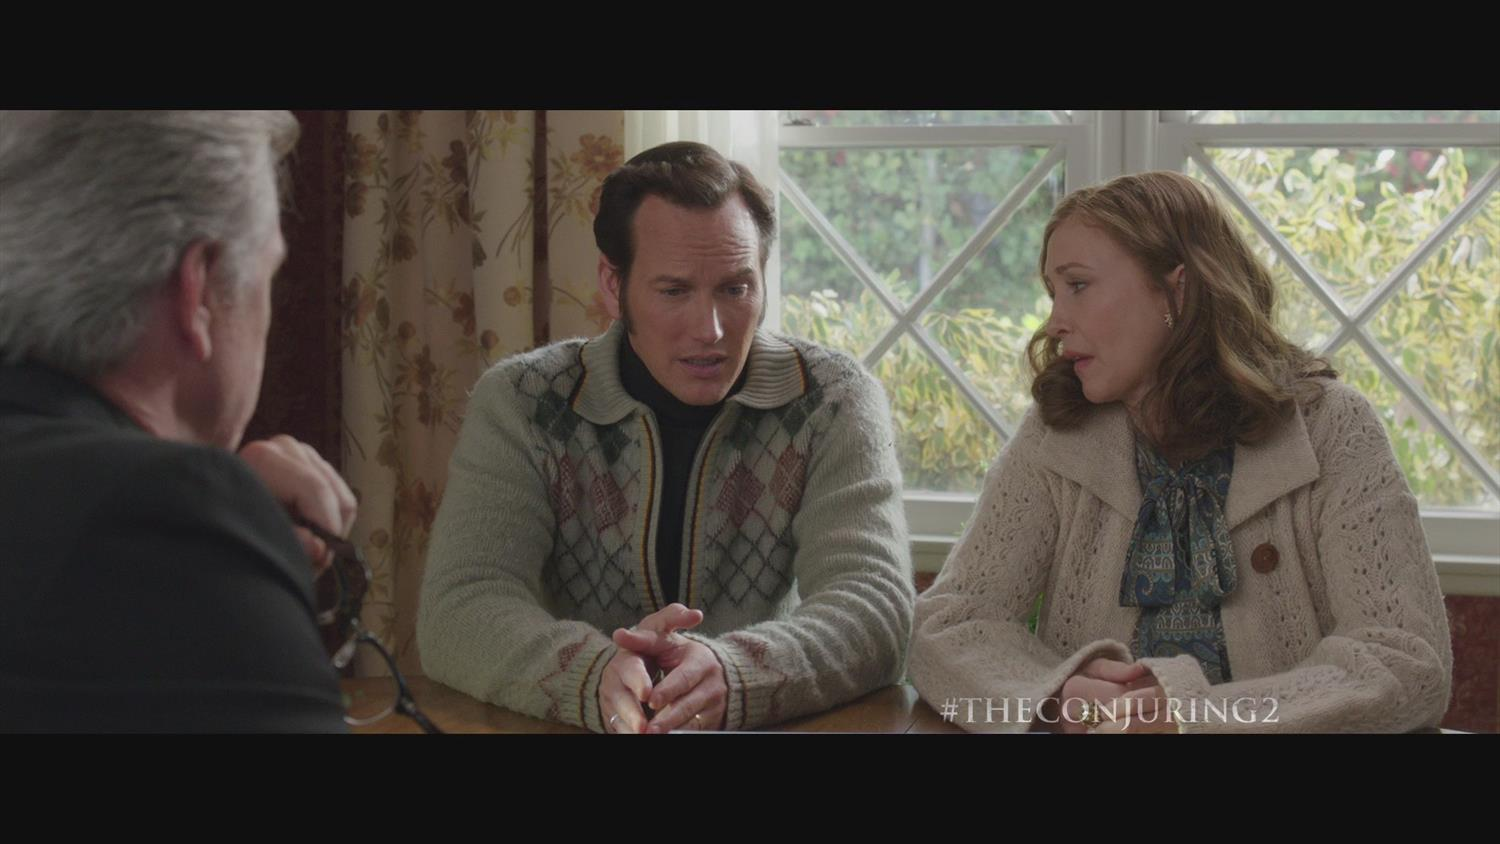 The Conjuring 2: Trailer